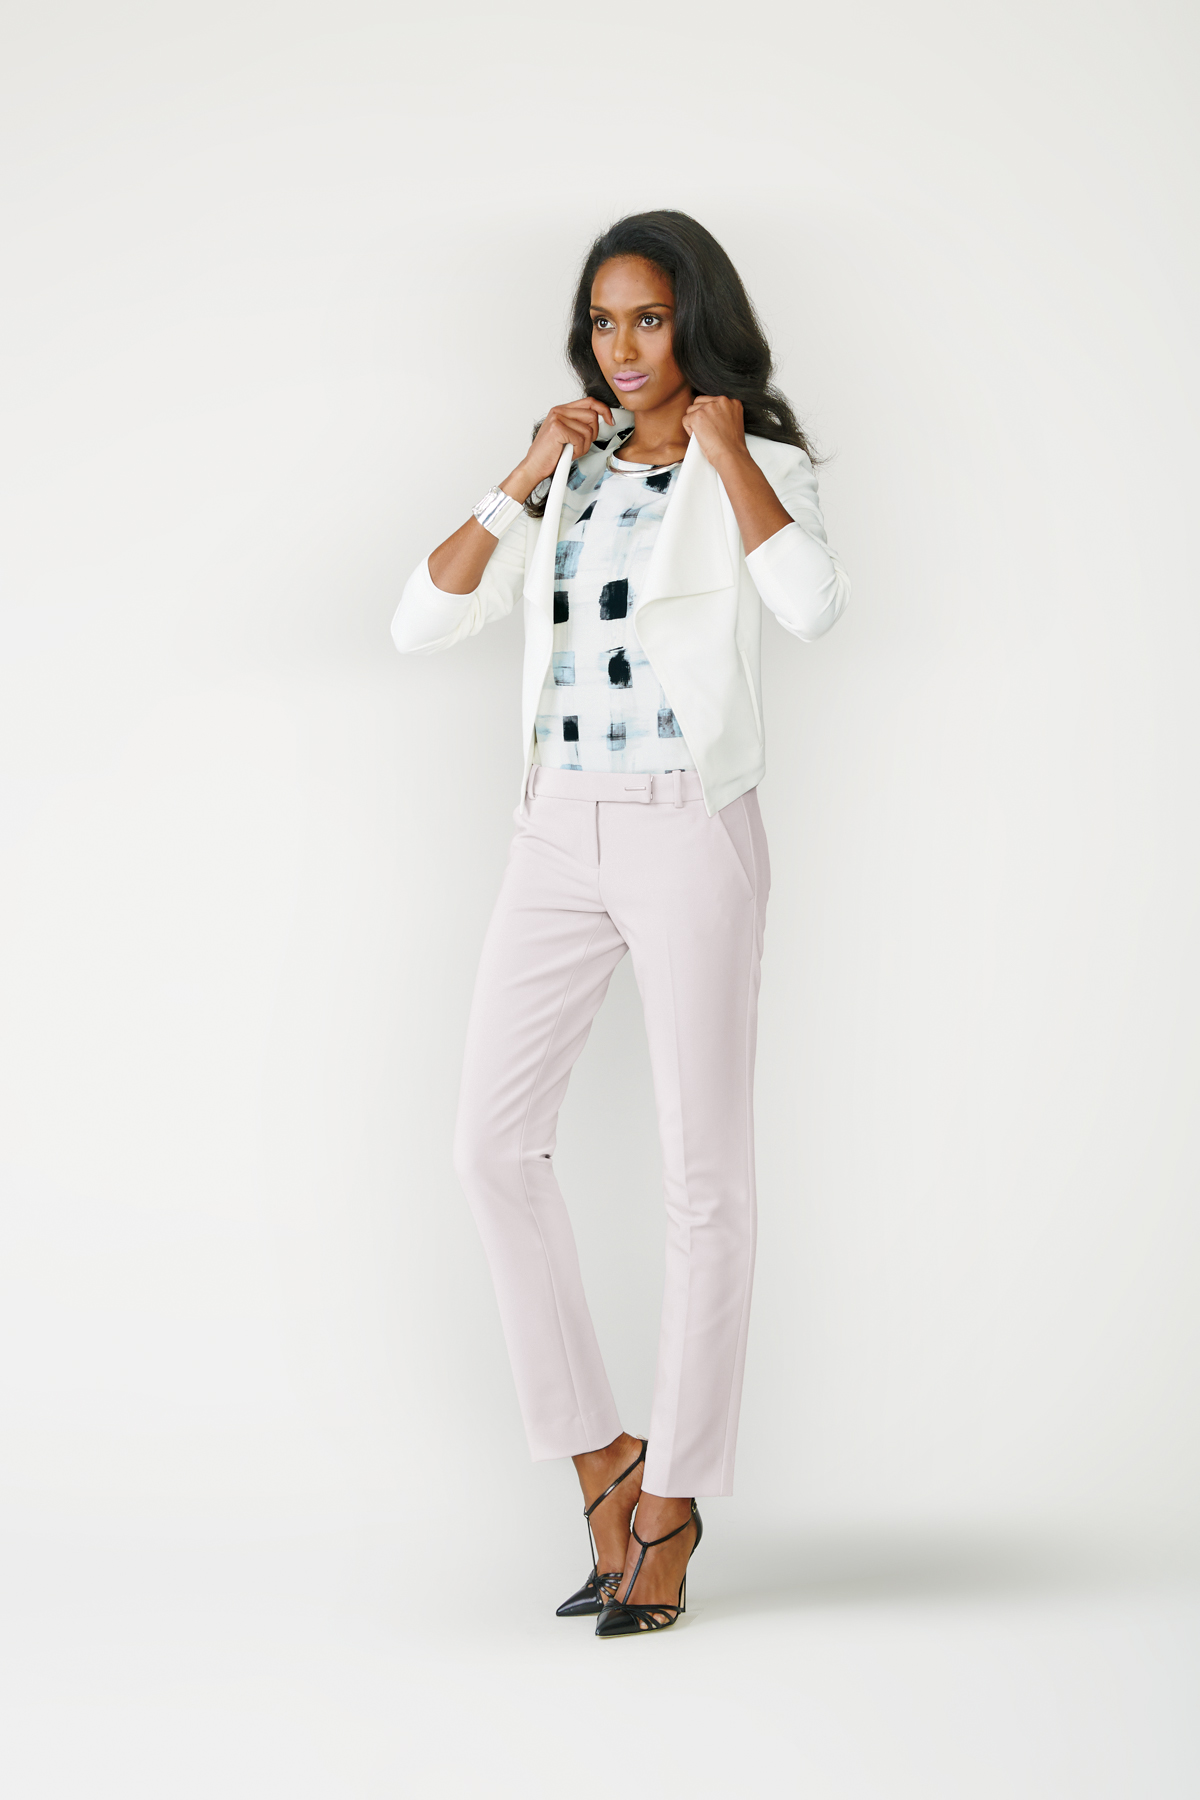 Blazer + Printed Top + Slim Pants + Heels